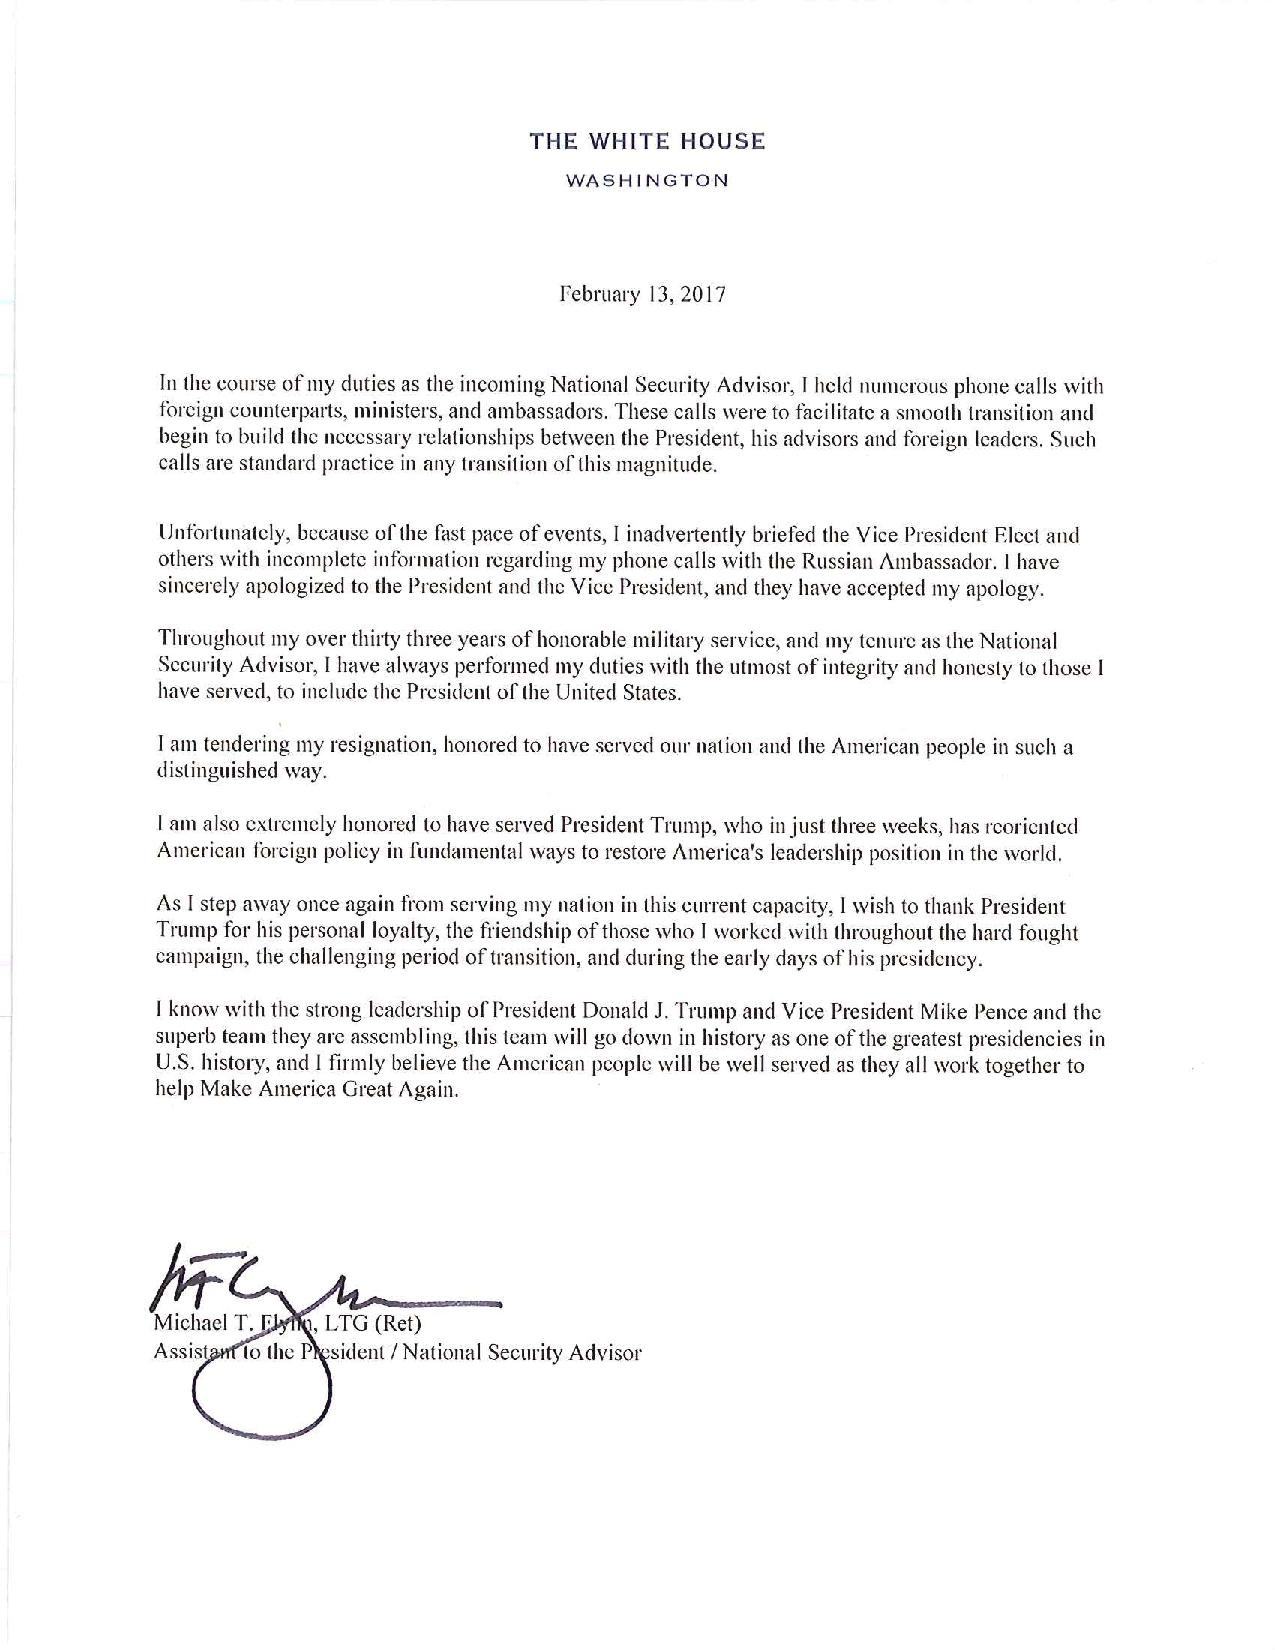 filemichael flynn resignation letterpdf